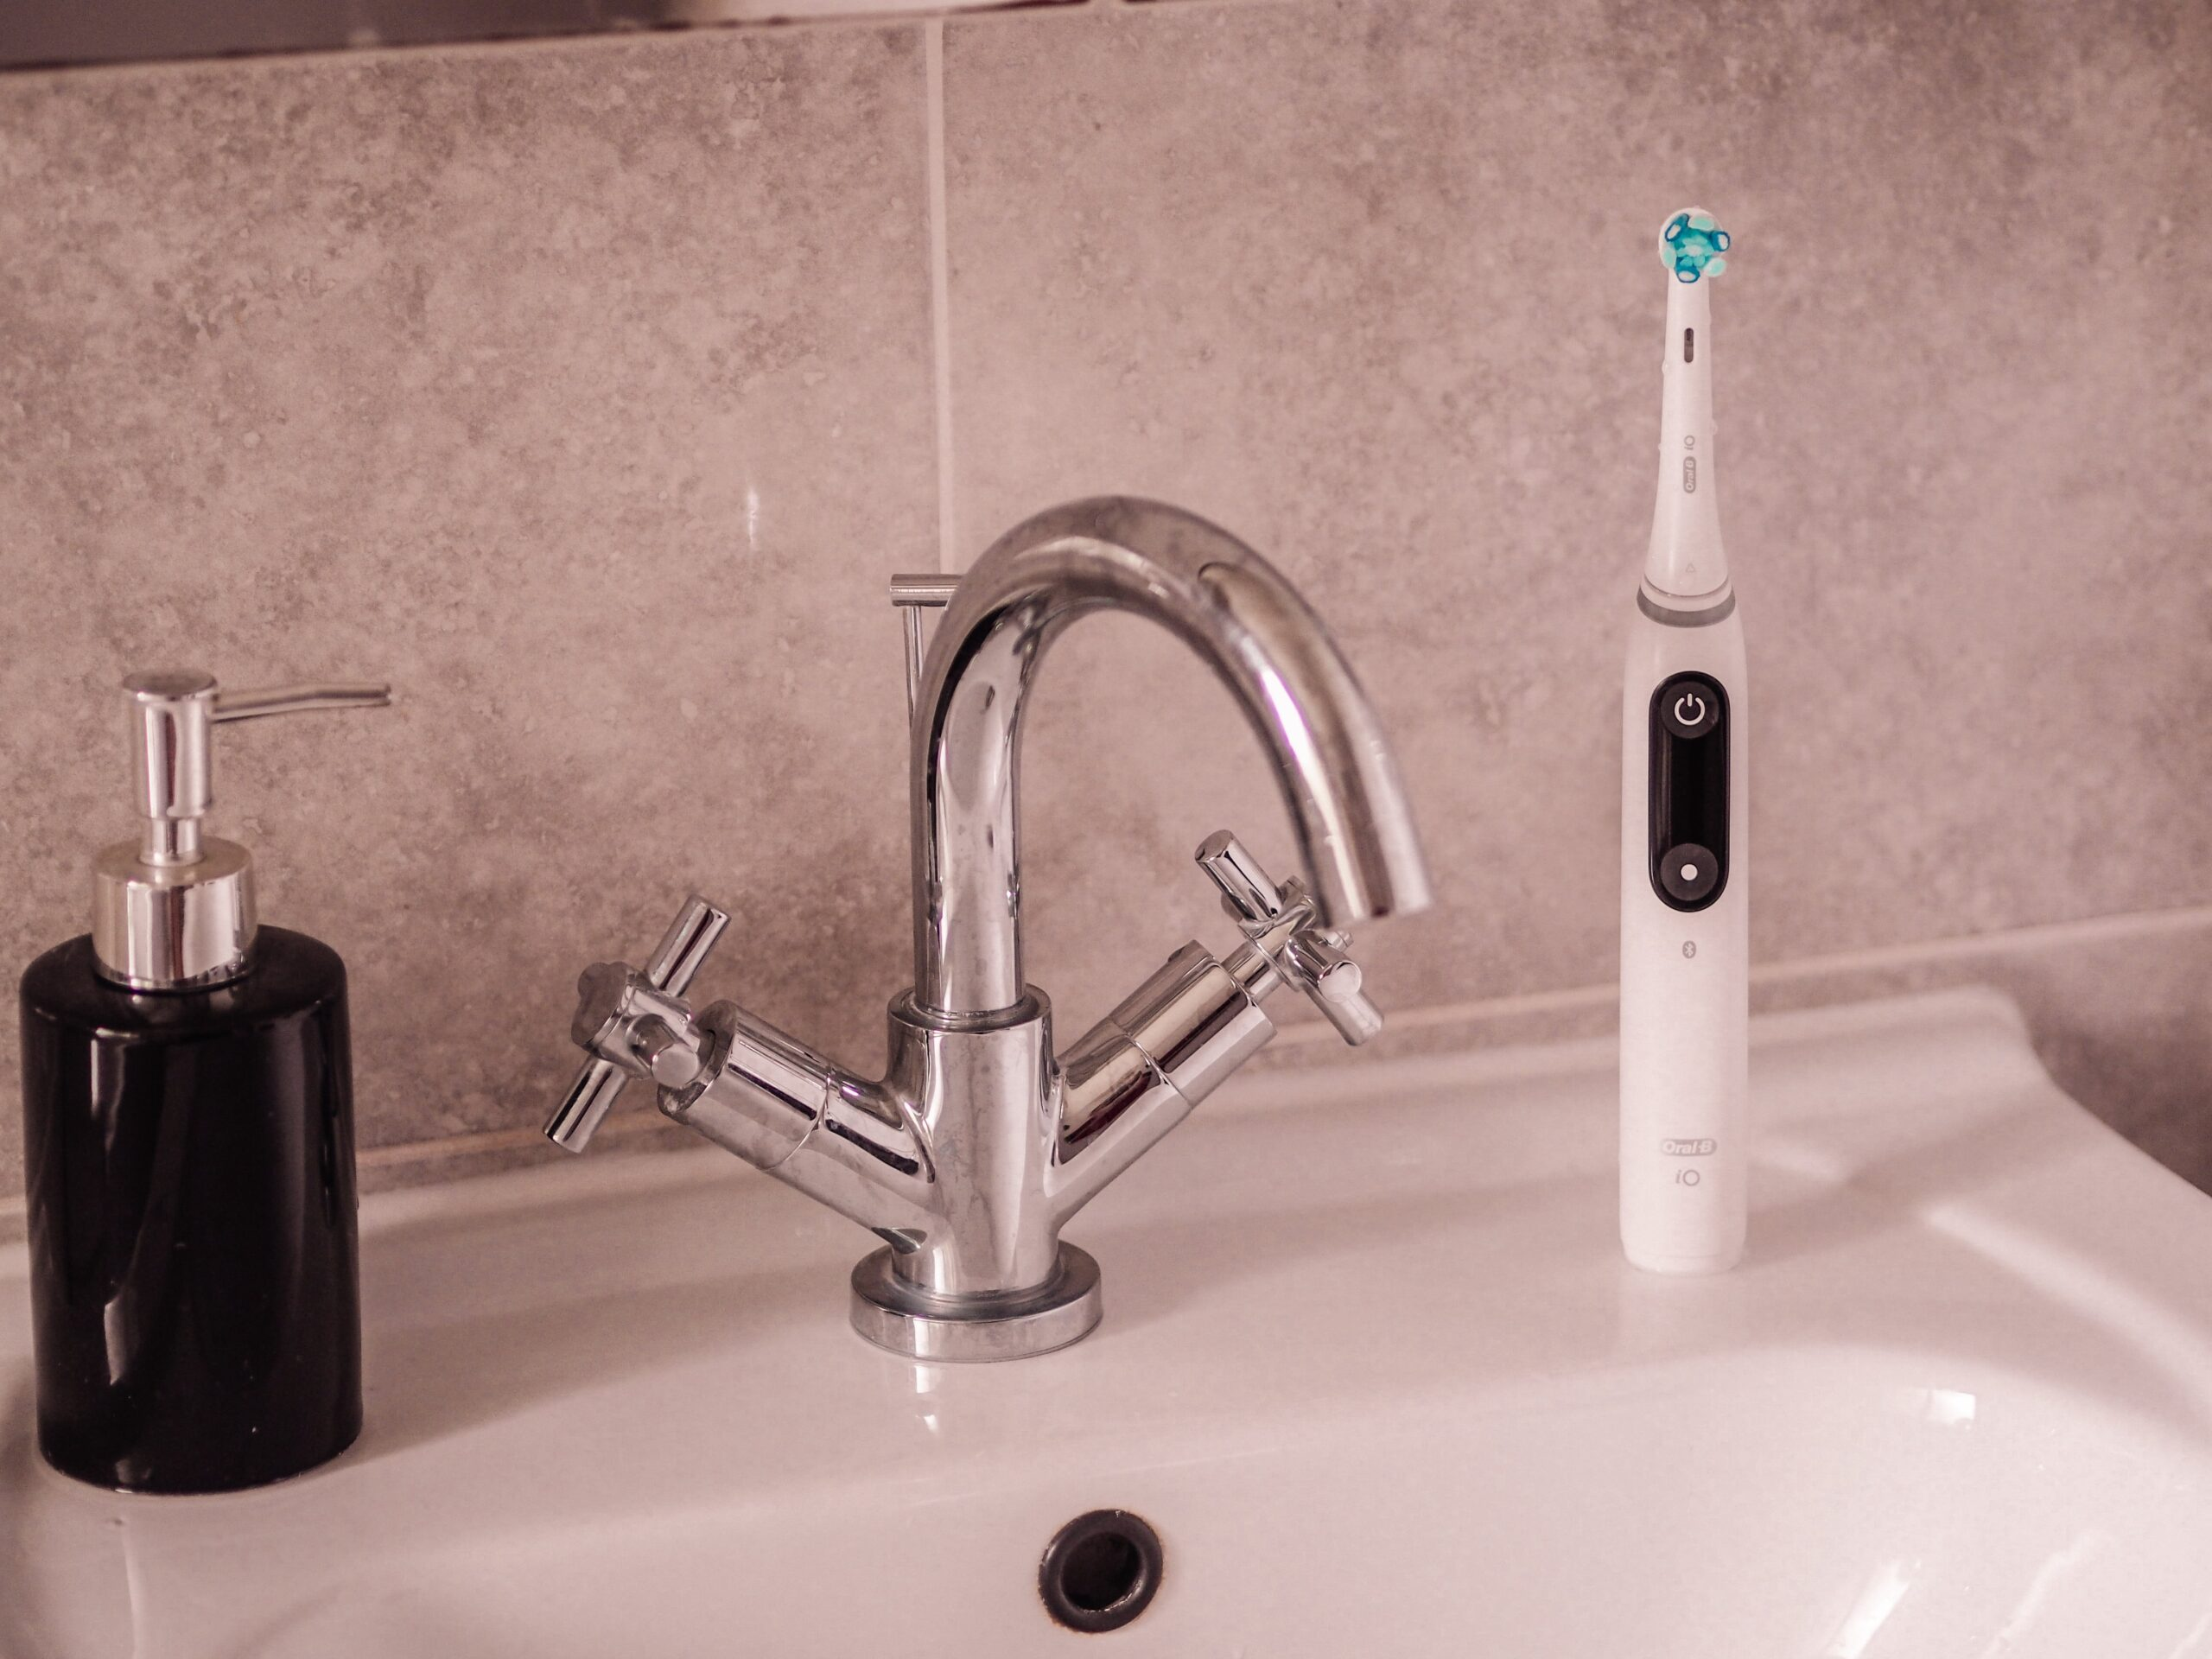 Oral B iO9 Electric Toothbrush Review